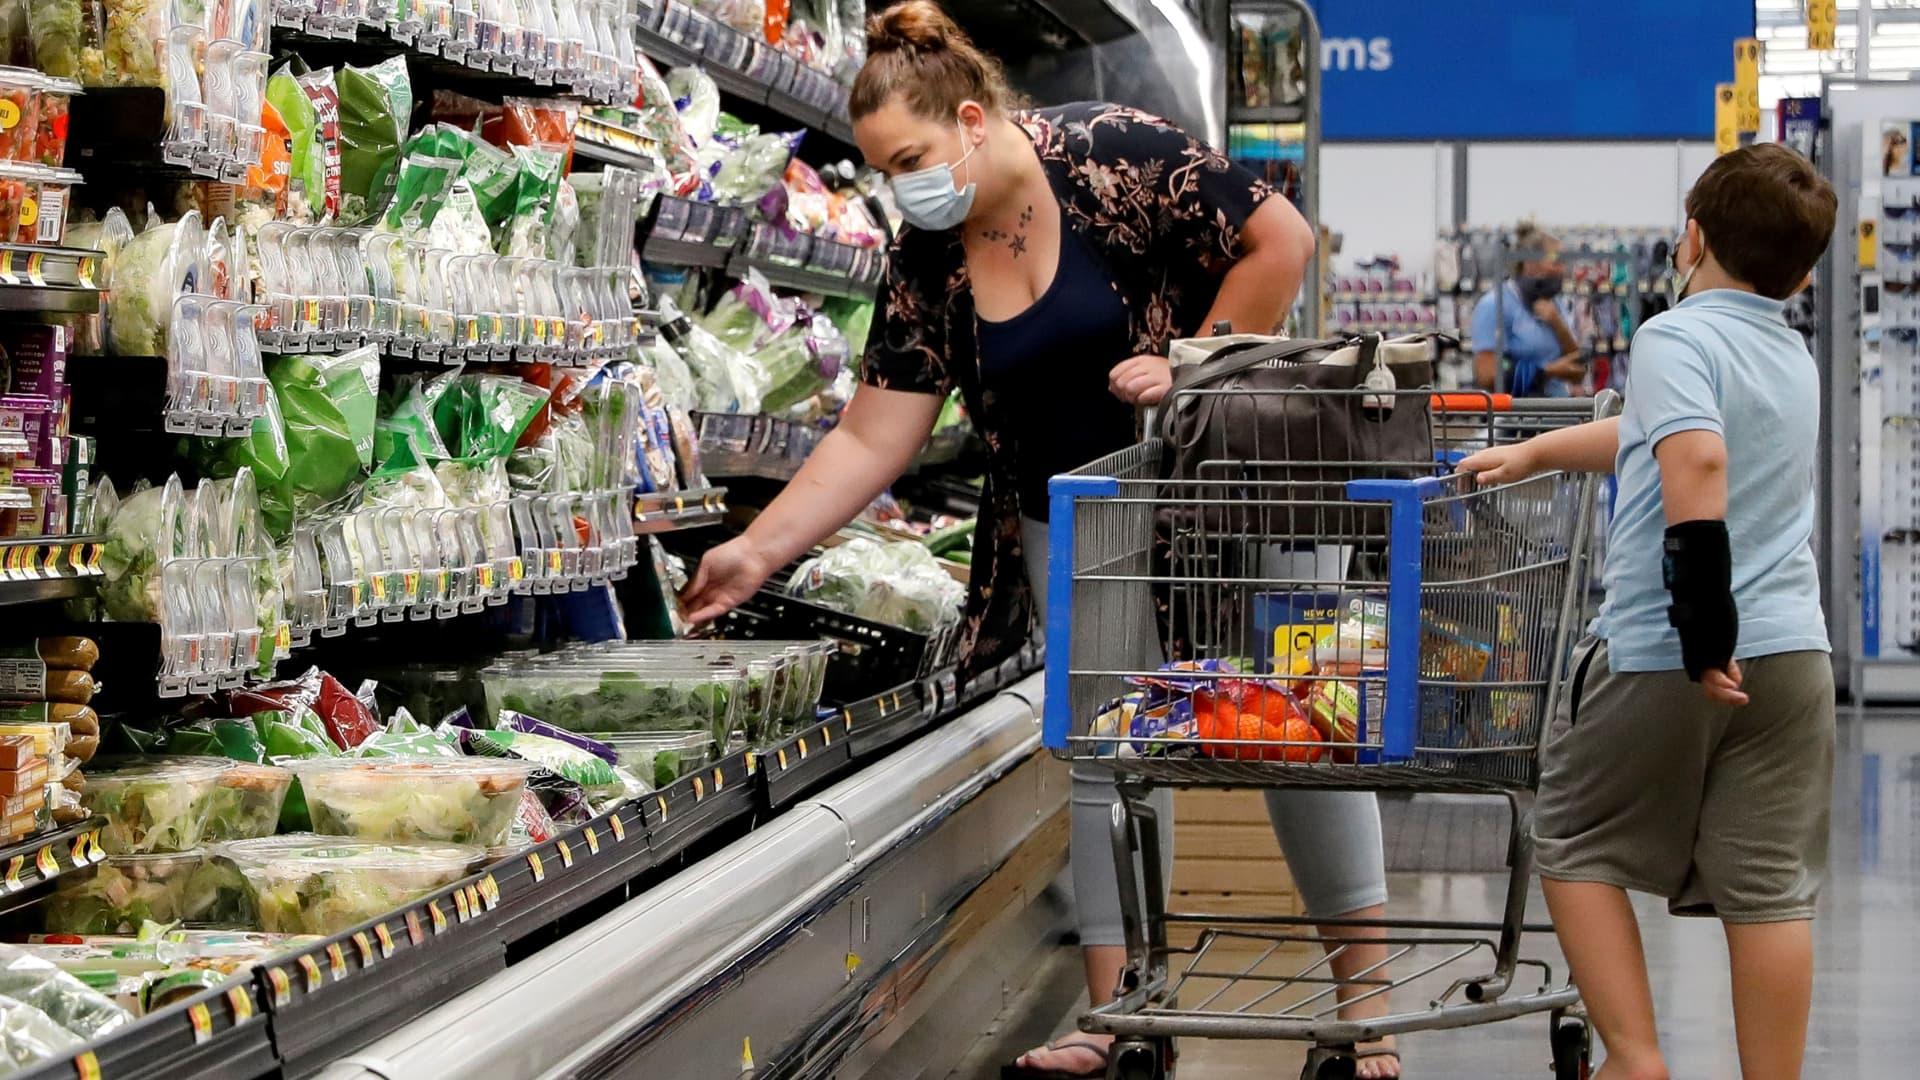 Shoppers are seen wearing masks while shopping at a Walmart store in Bradford, Pennsylvania, July 20, 2020.